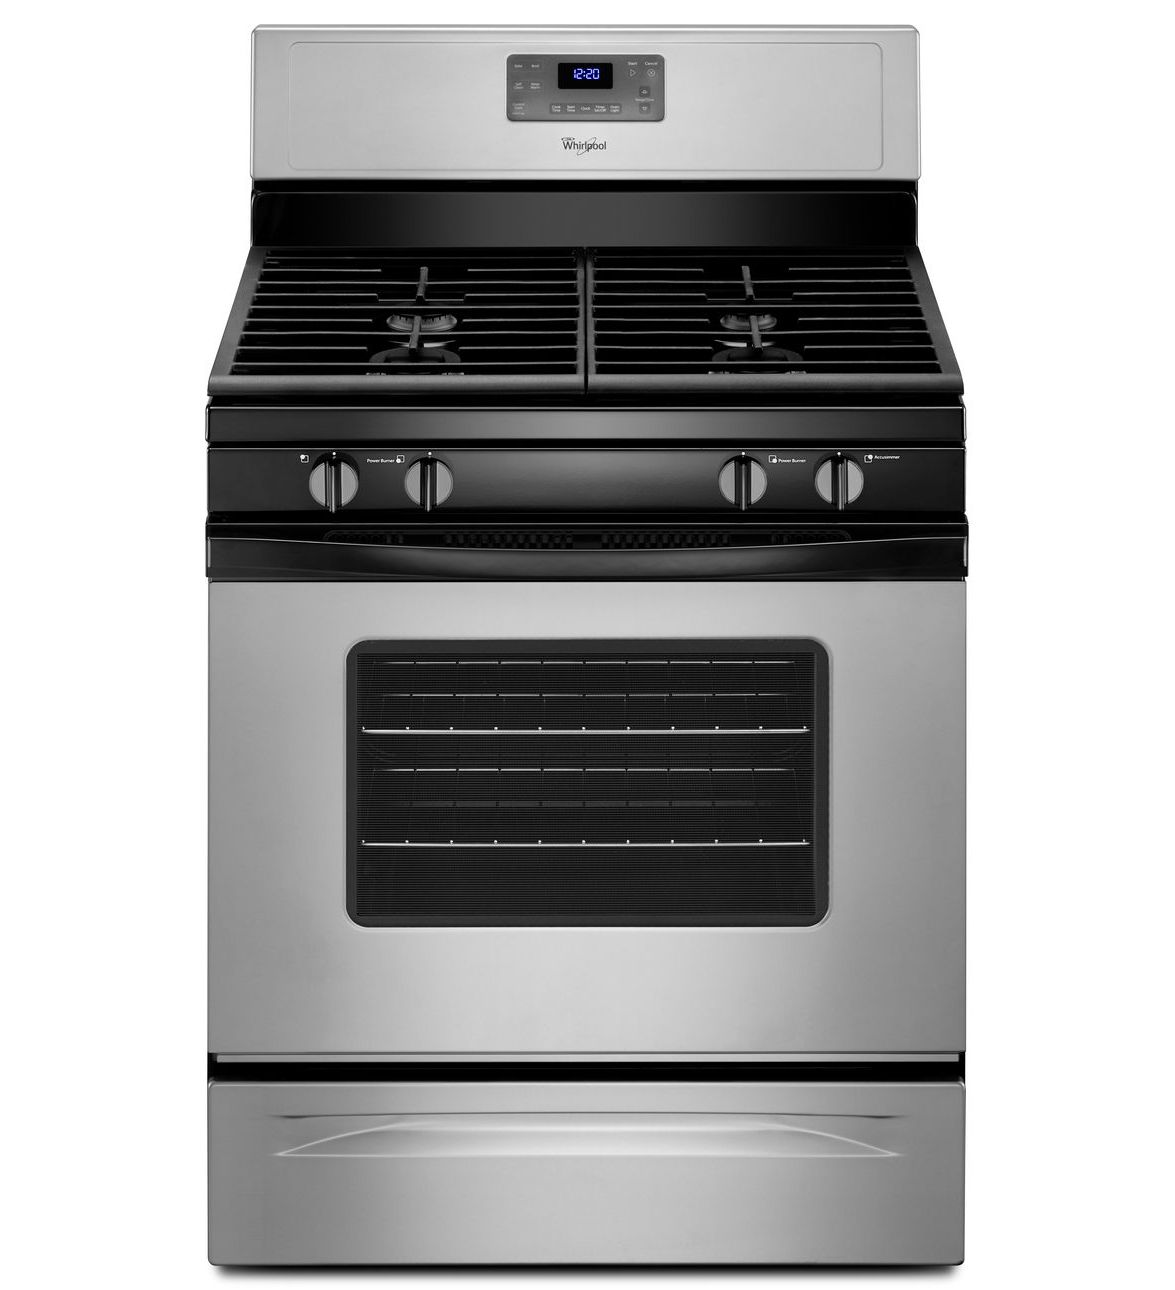 Whirlpool 5.0 cu. ft. Gas Range with Self-Cleaning Oven in Silver